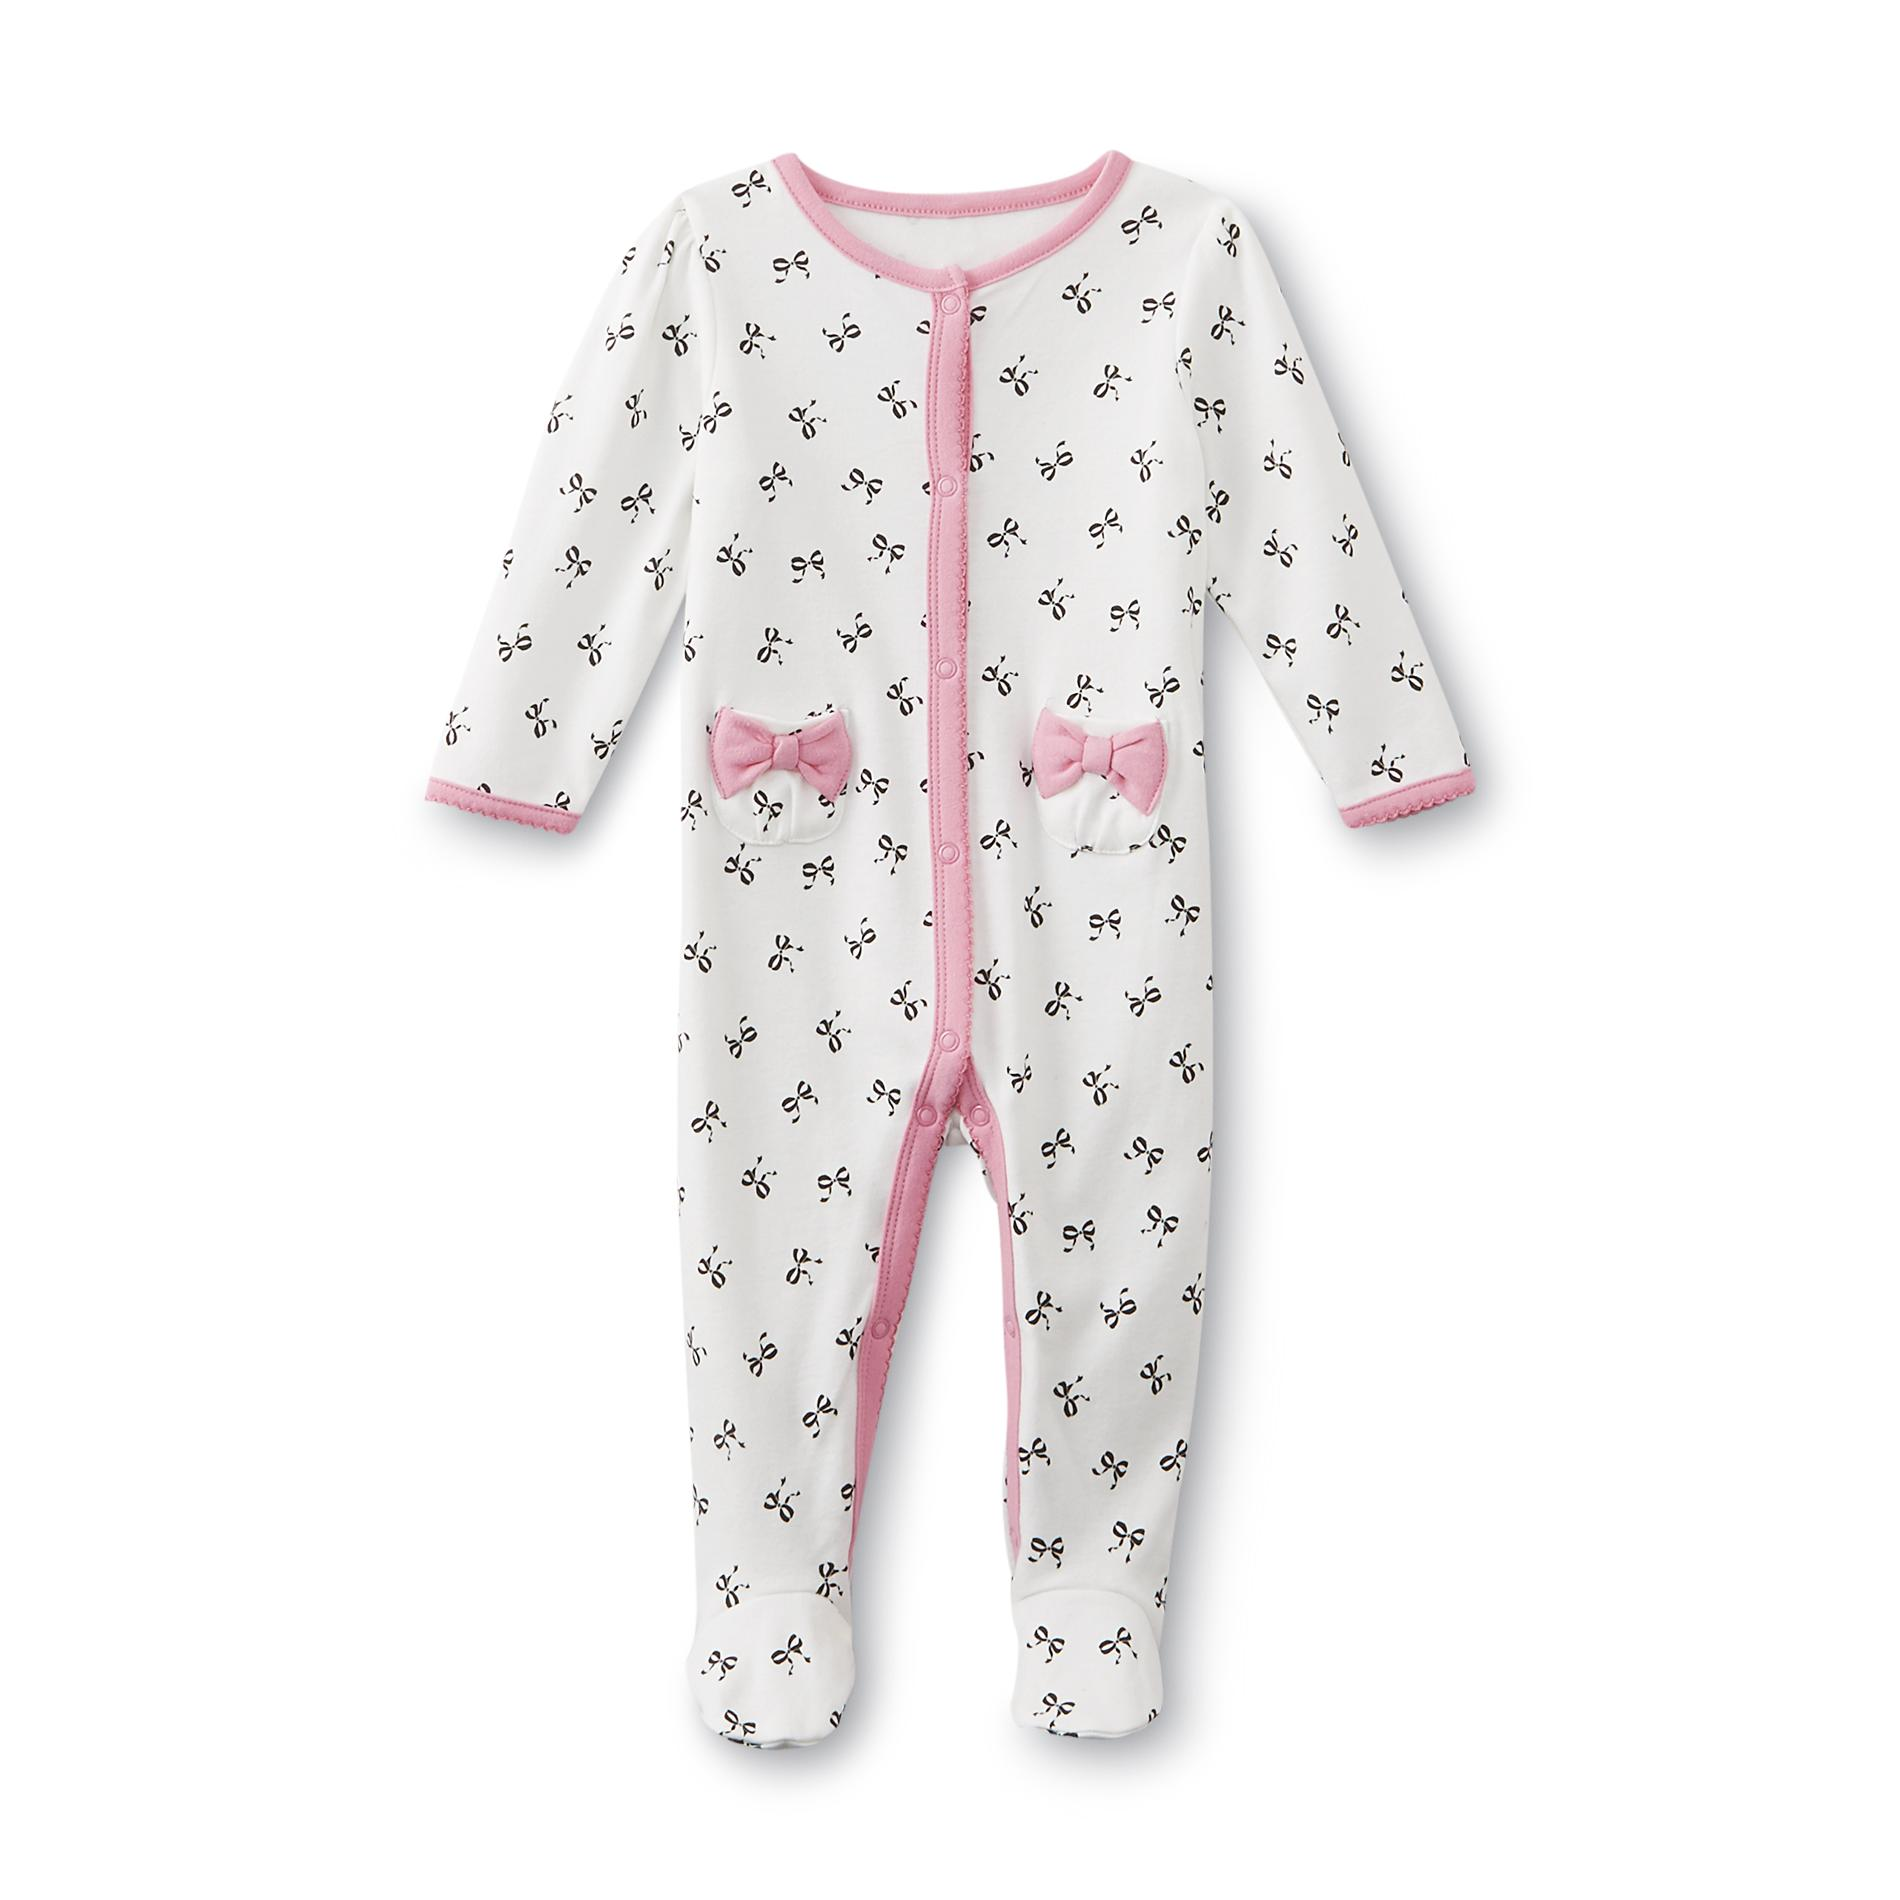 Little Wonders Newborn Girl's Footed Pajamas - Bows